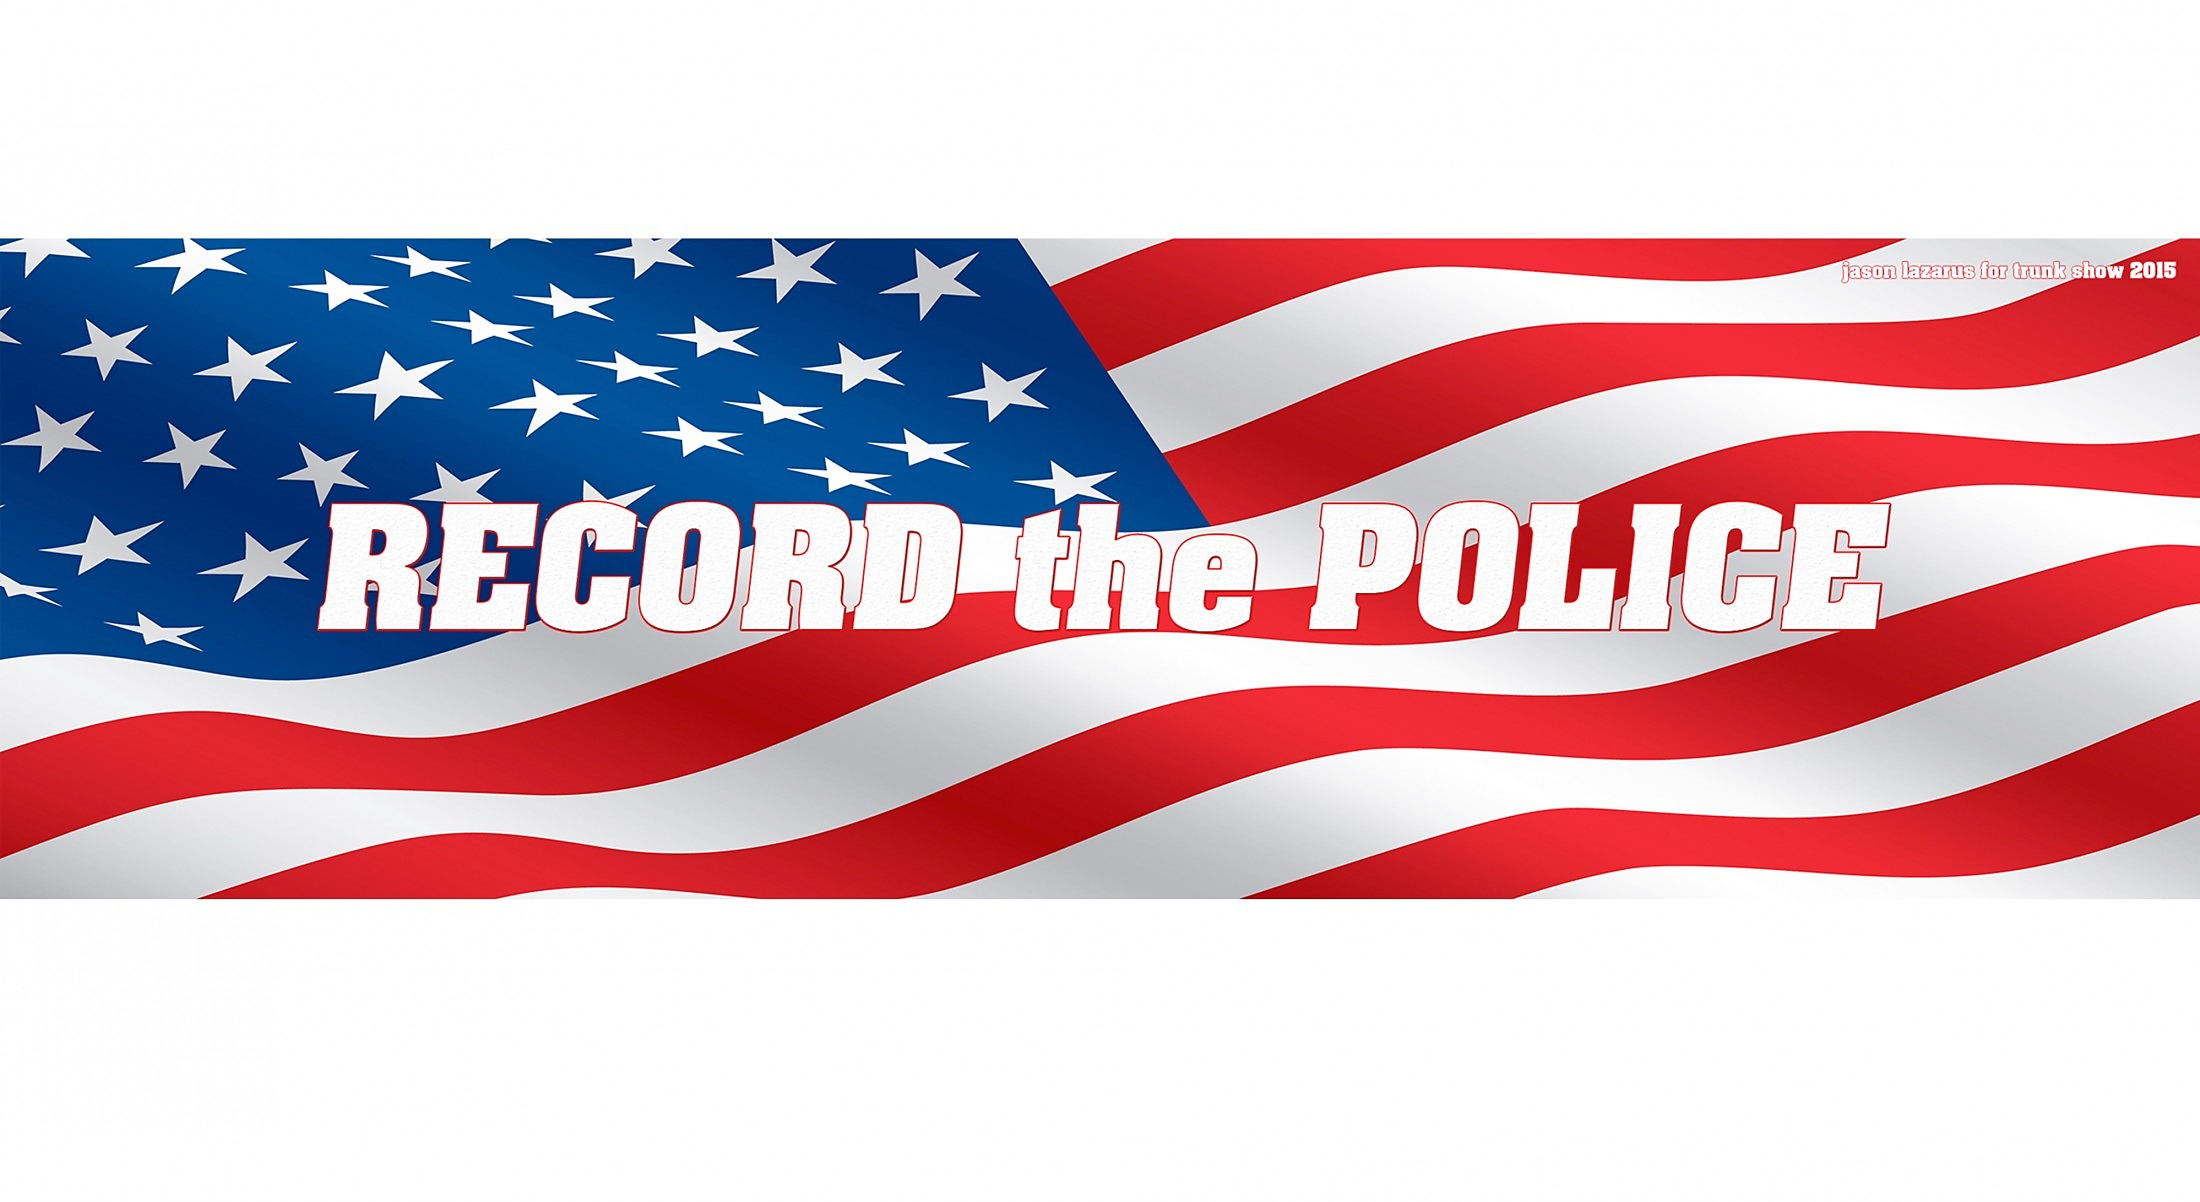 RECORD the POLICE Bumper Sticker, 3×10″ Commissioned by TRUNK SHOW and debuted in Chicago, at Gallery 400, January 24, 2015